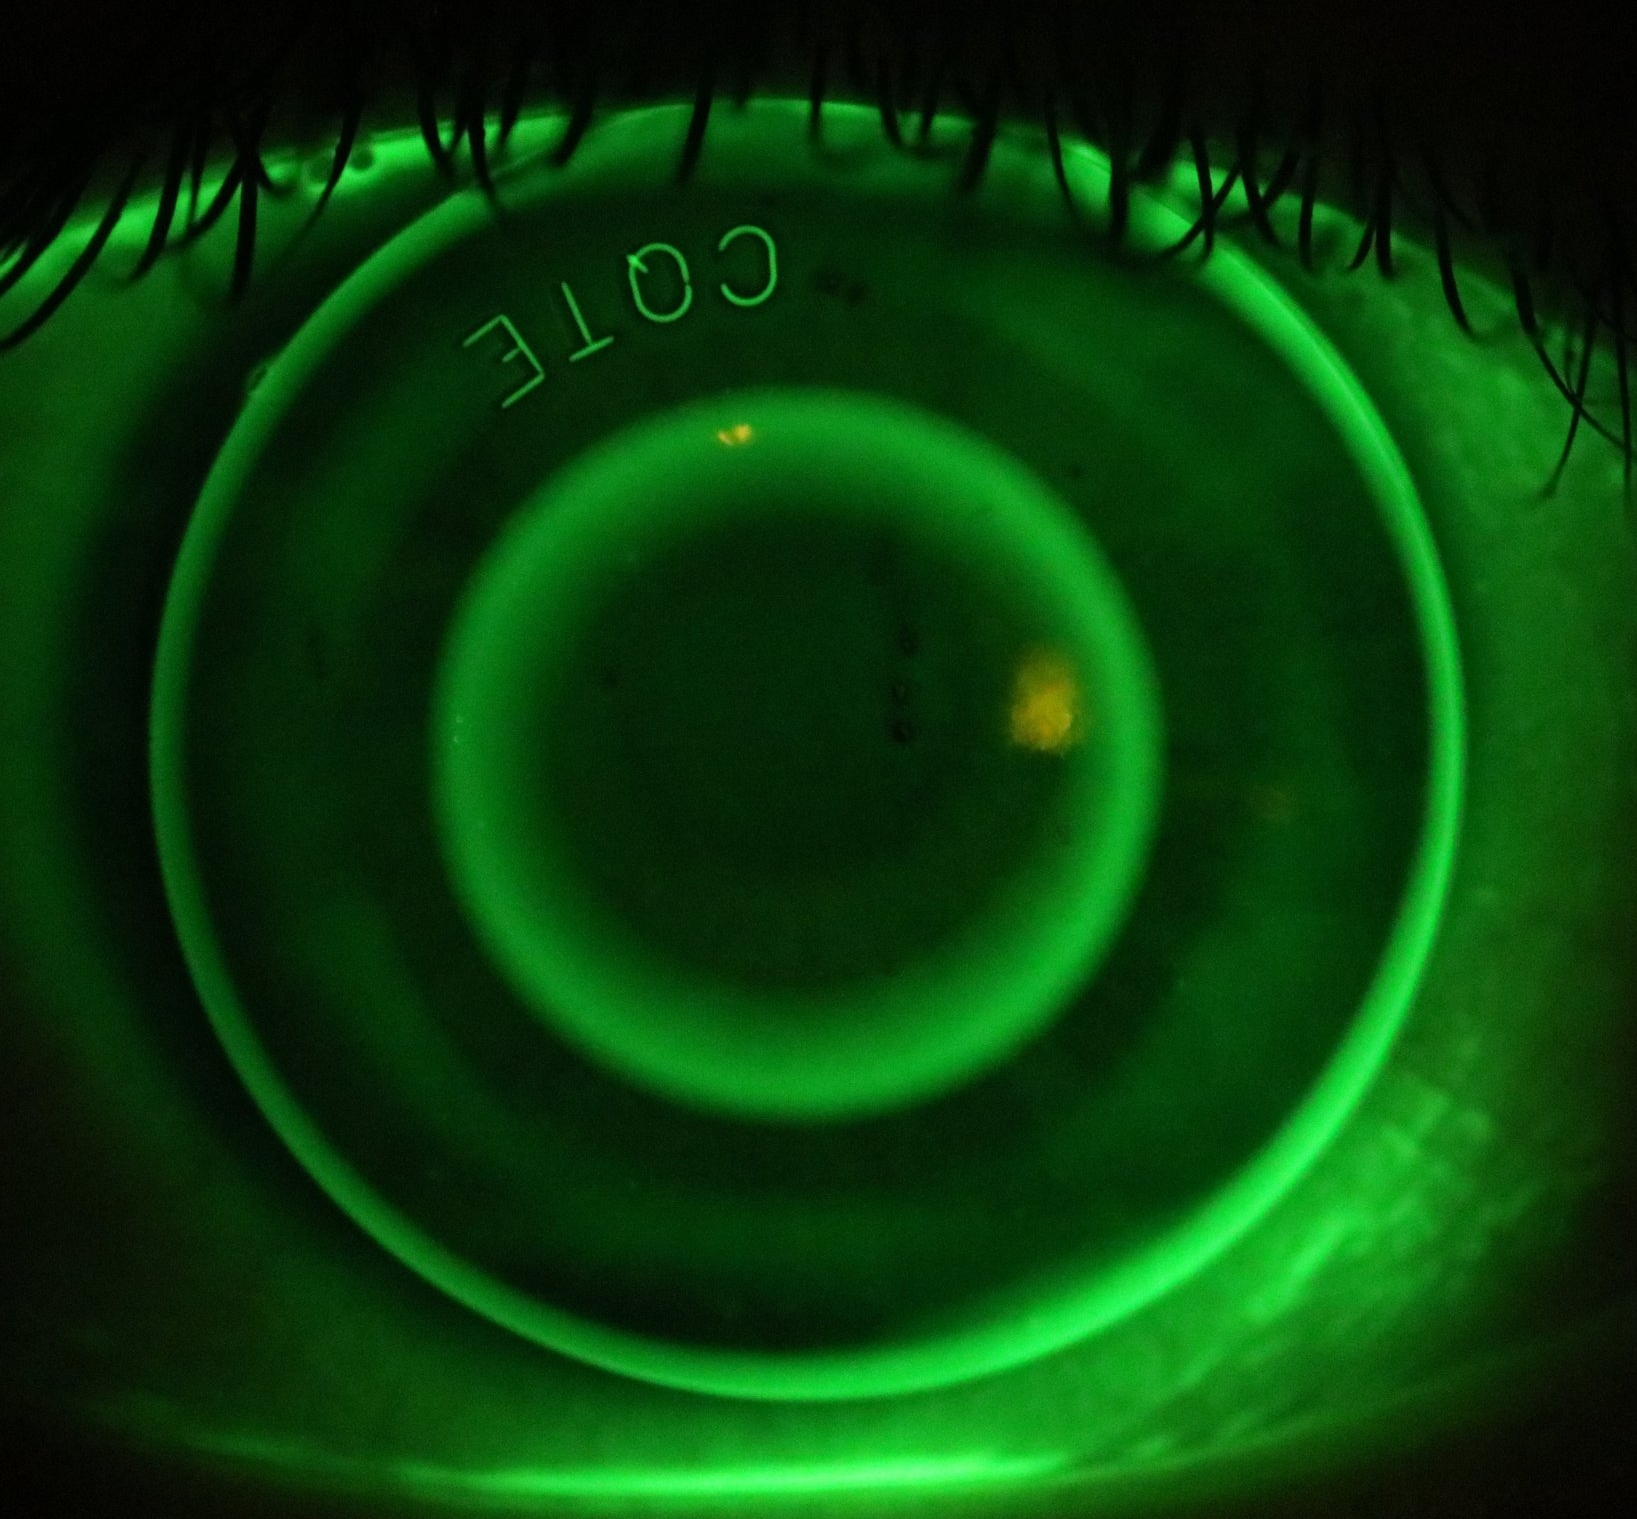 David's Ortho-K lens photographed on his eye.